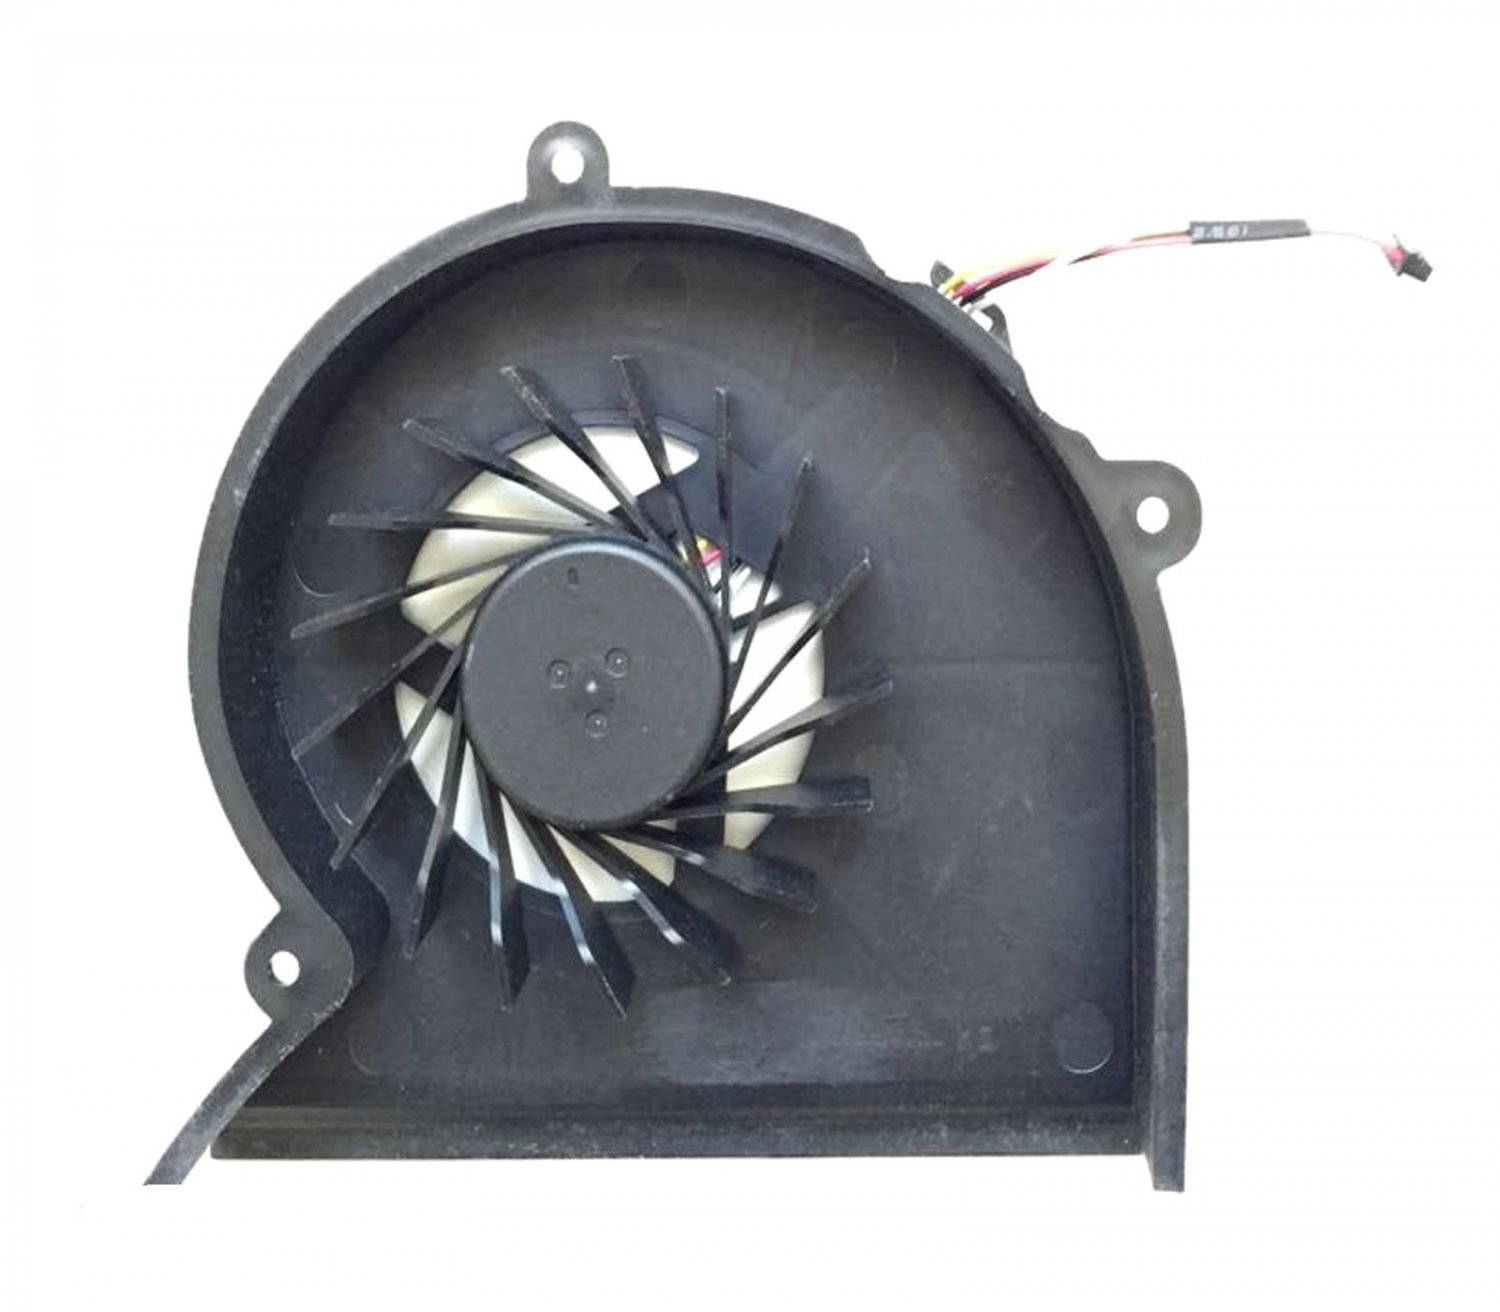 New HP TouchSmart 310-1125Y 310 CPU cooling fan GB1209PHV1-A